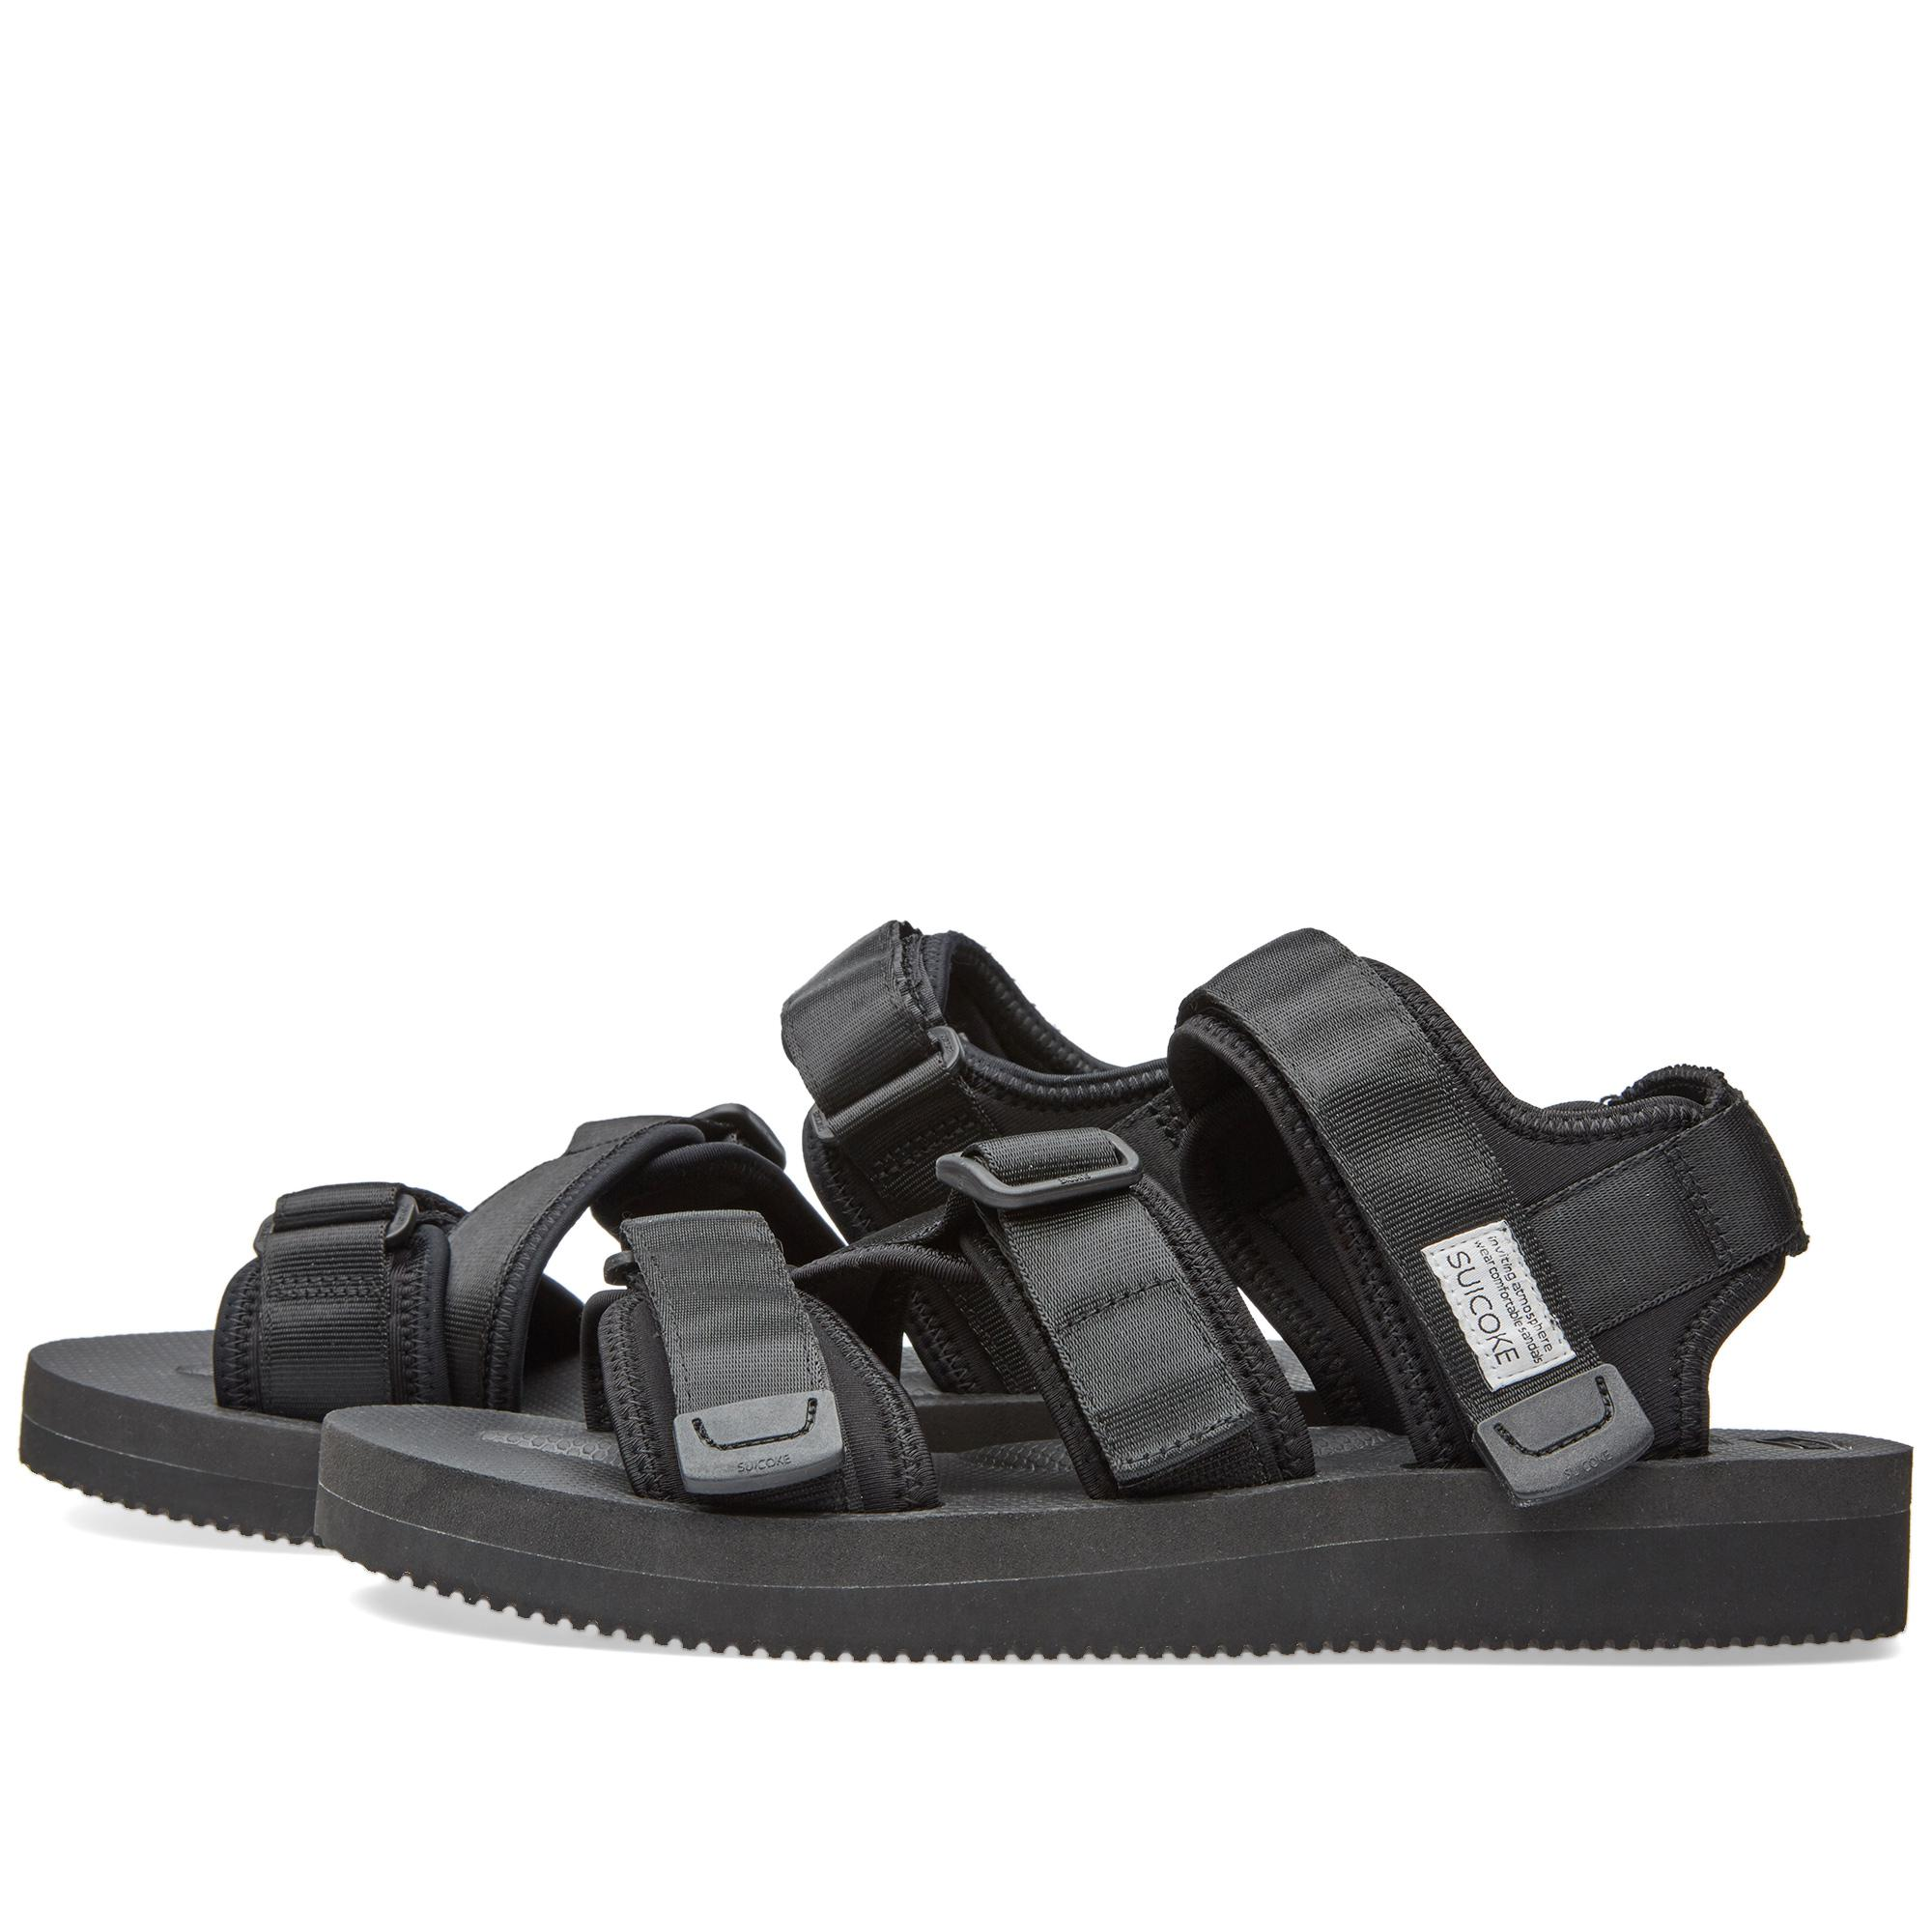 18e0938f5fea Lyst - Suicoke Kisee-v in Black for Men - Save 5%